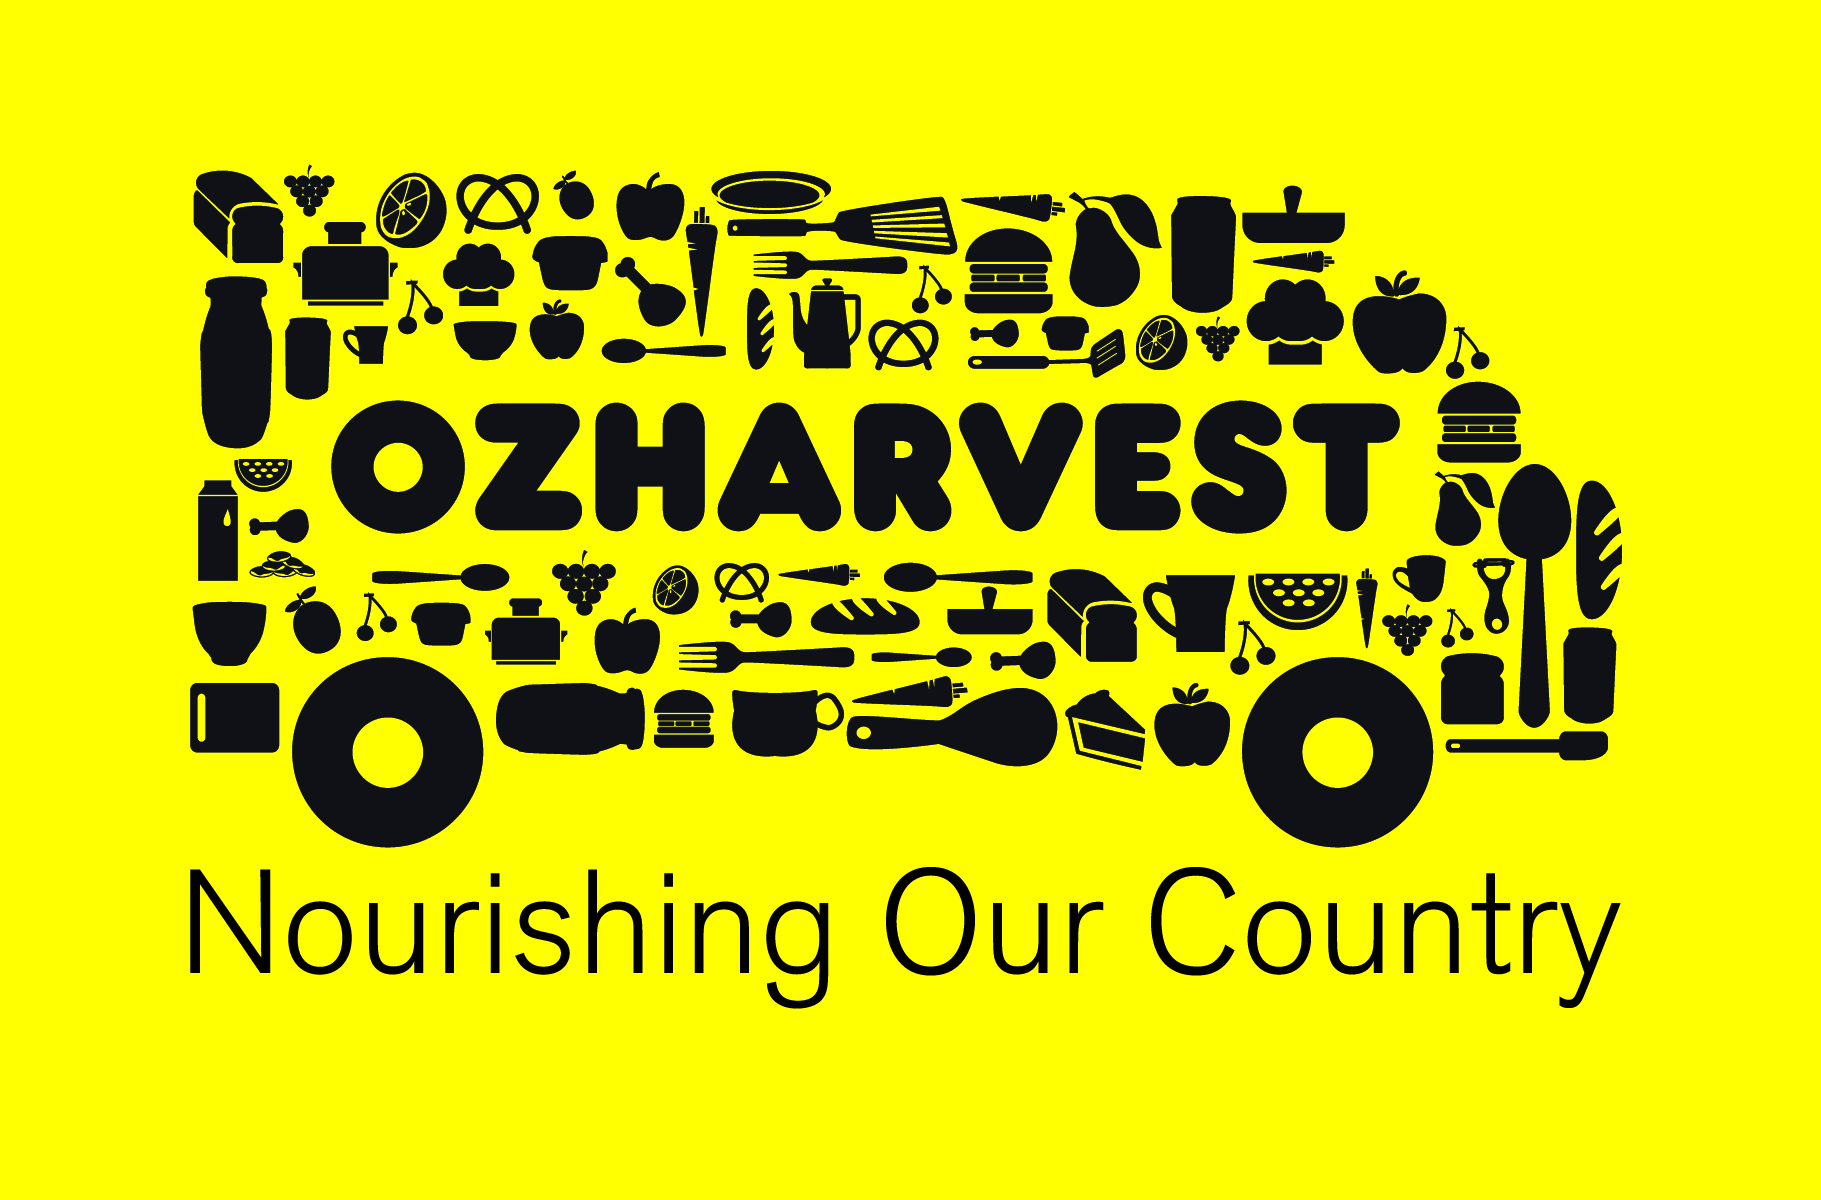 oz harvest logo.jpg